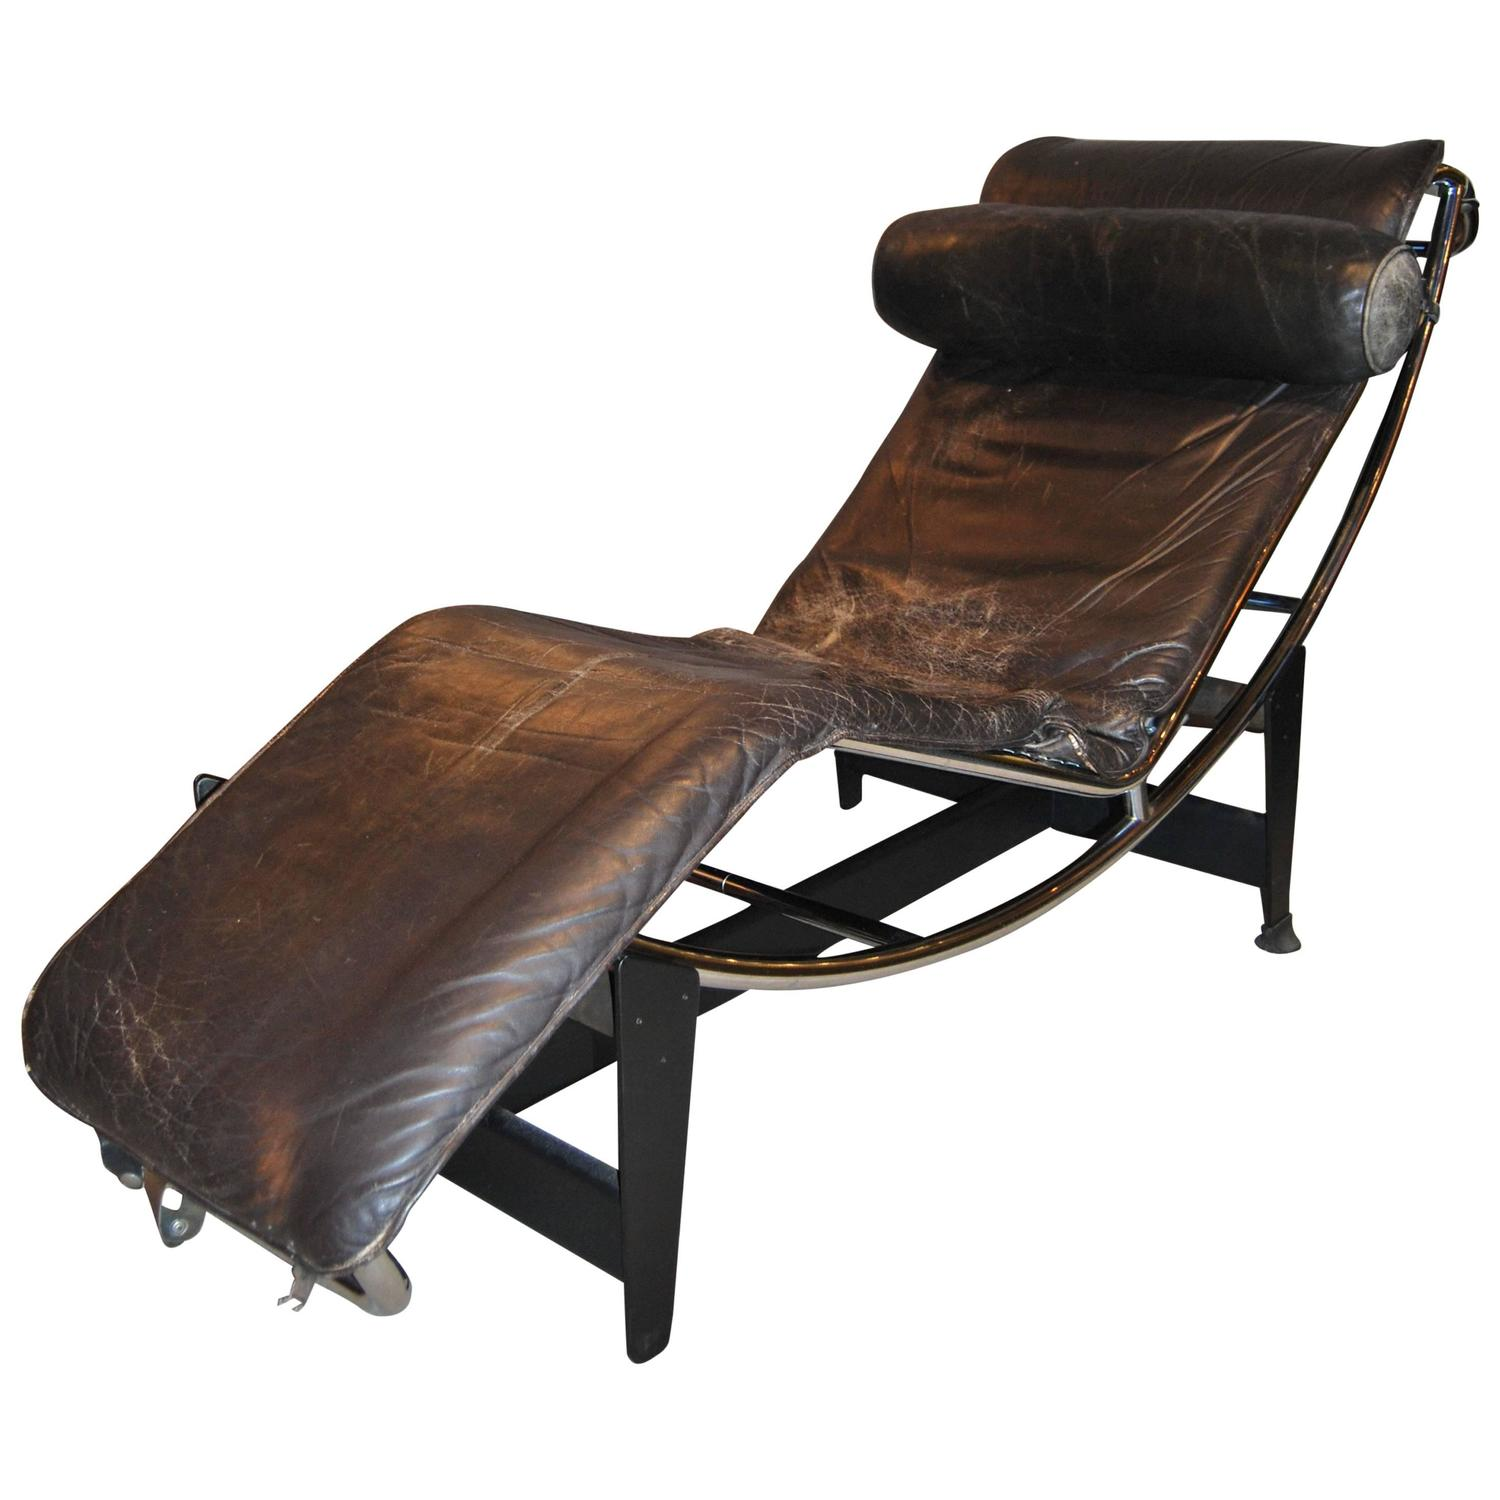 Superbe Early Le Corbusier/Jeanneret/Perriand LC4 Chaise Lounge For Sale At 1stdibs